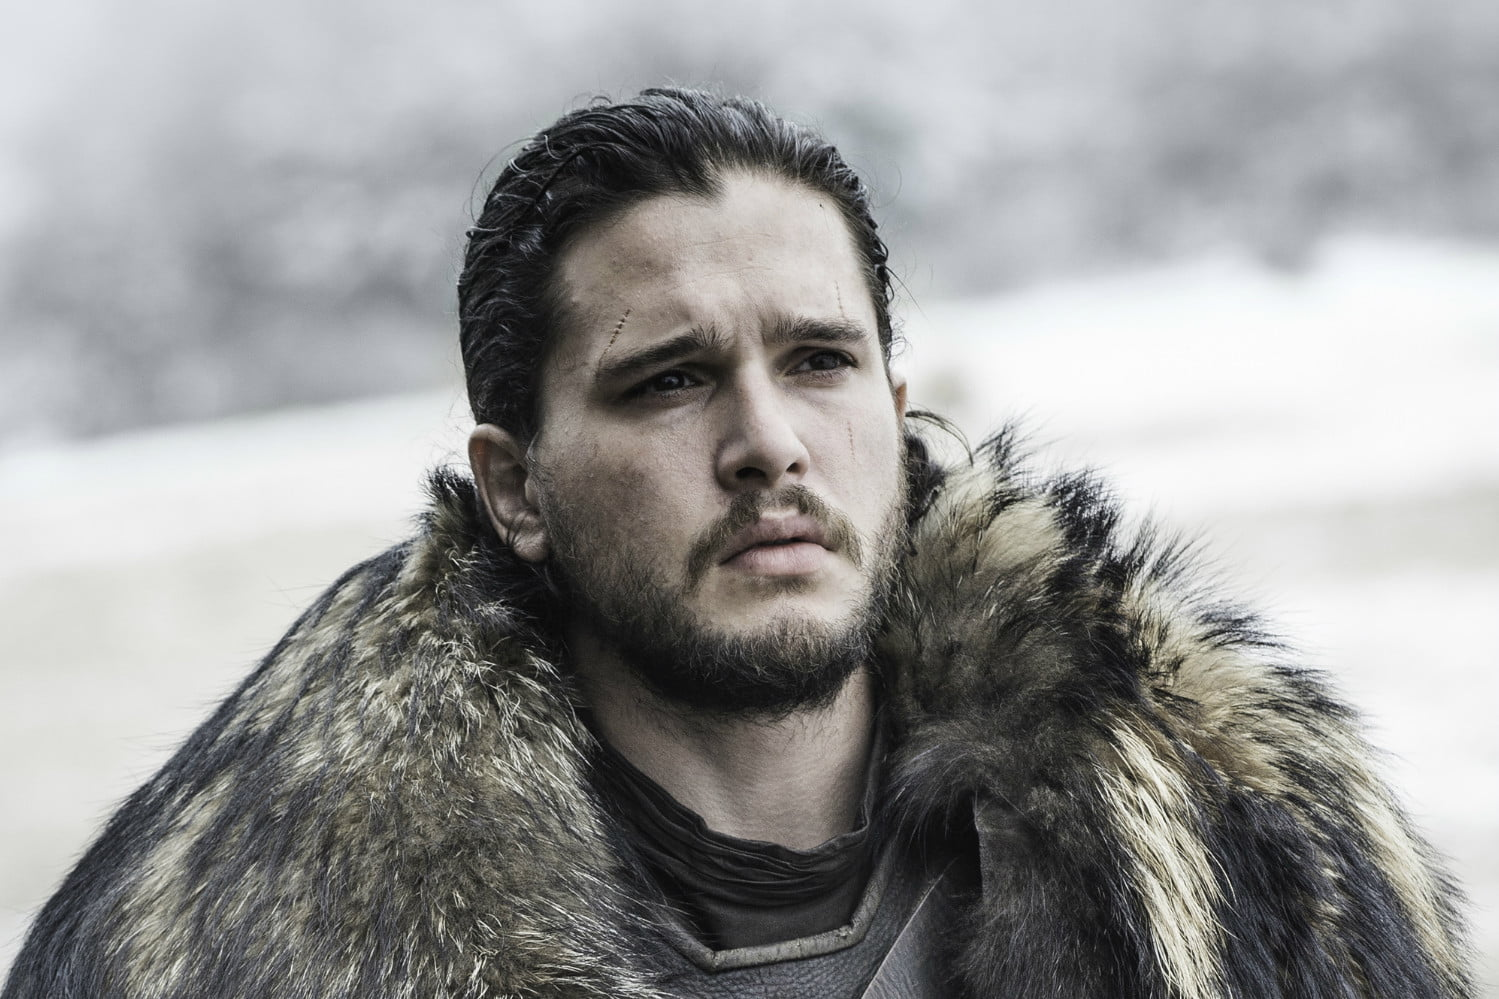 Game of Thrones' Kit Harington will join the Marvel Cinematic Universe